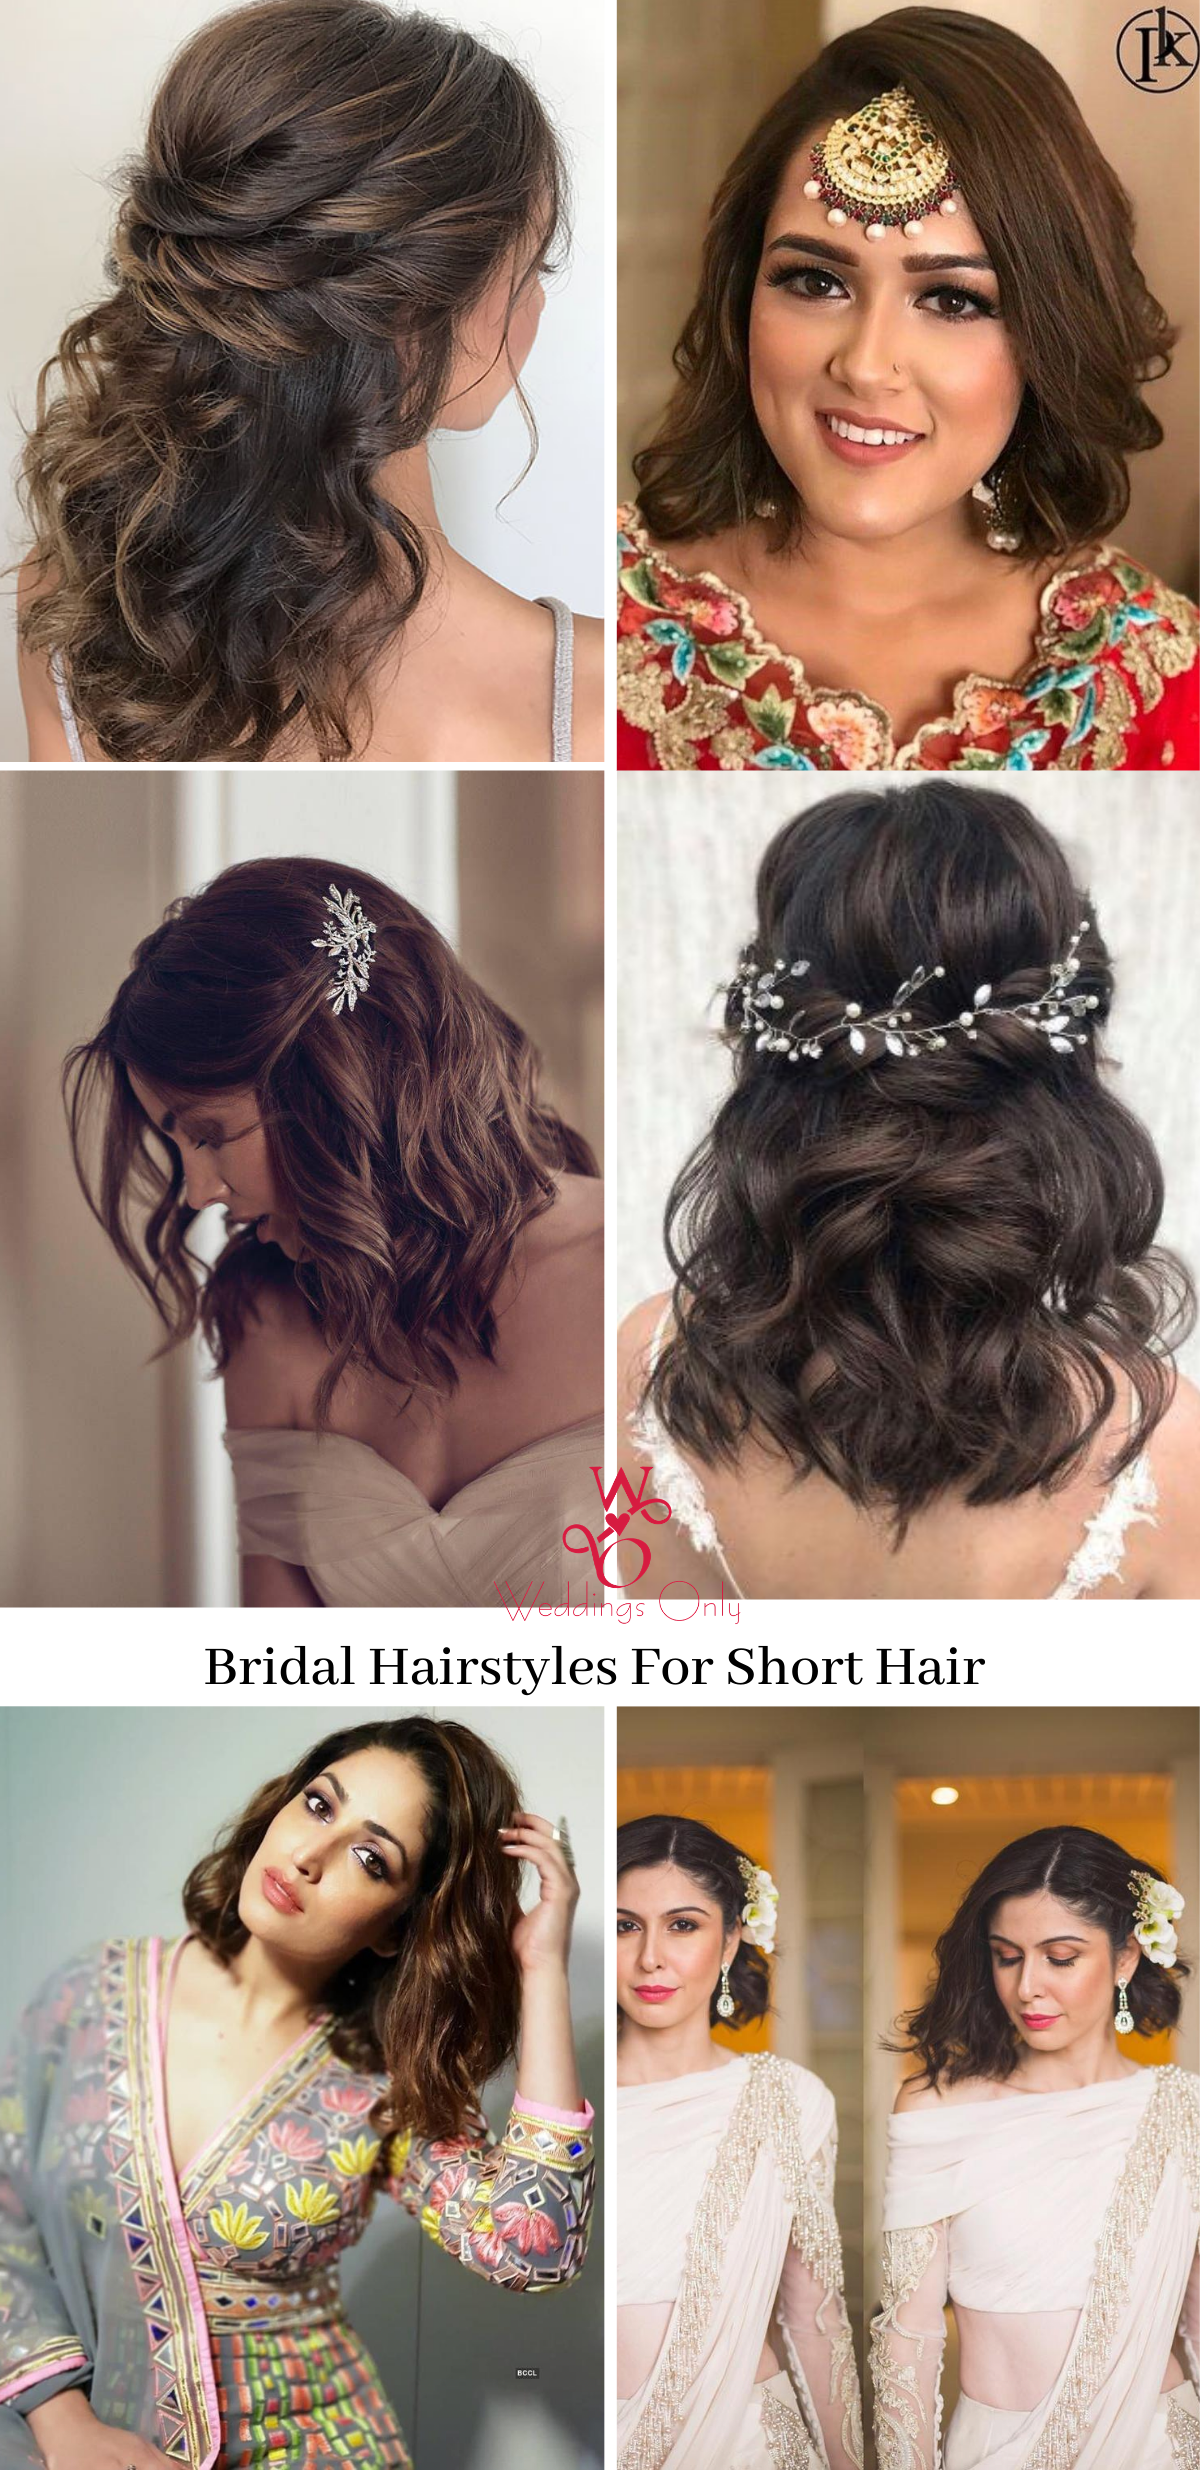 Trending Bridal Hairstyle For Short Hair Bridal Hairstyle Bridal Inspiration Indian Wedding In 2020 Short Hair Outfits Hair Styles Short Wedding Hair